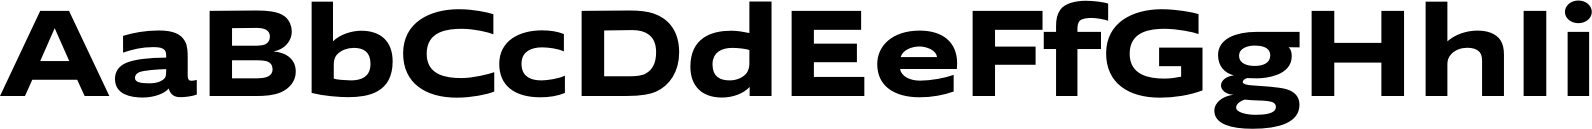 Supra Bold Extended Font